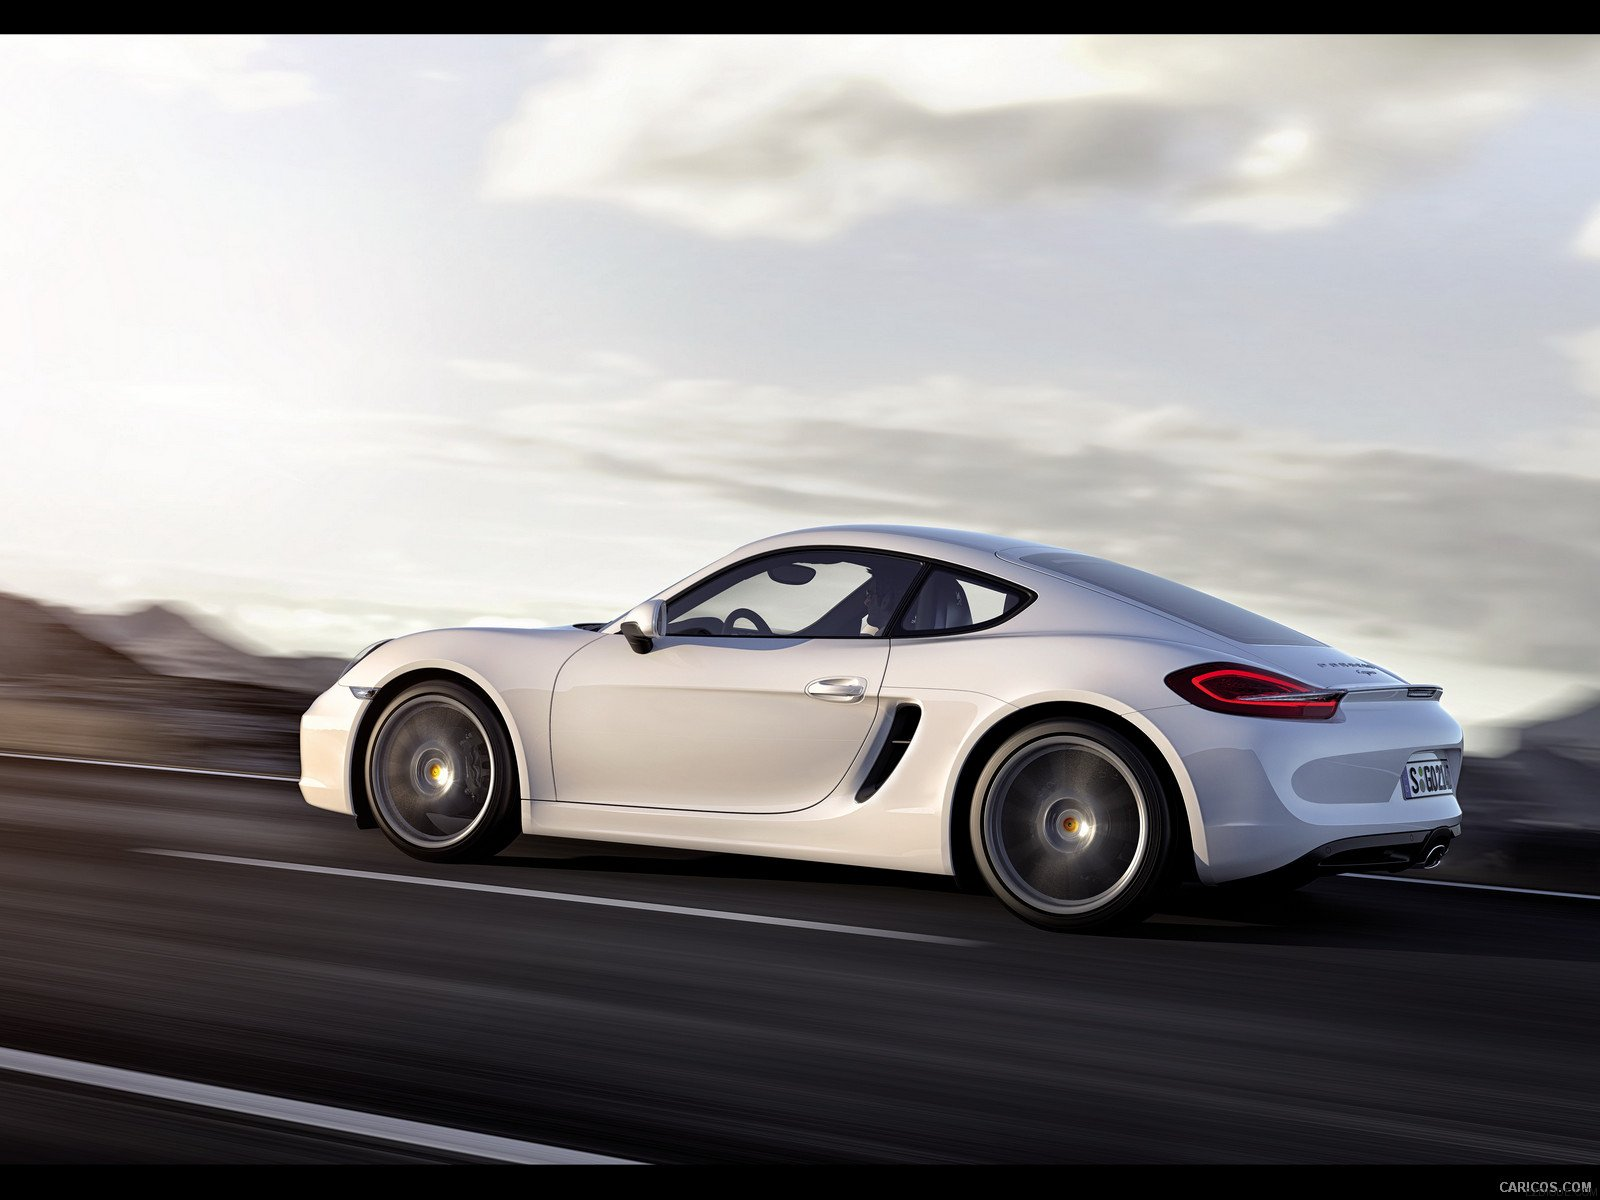 2014 Porsche Cayman S Wallpaper